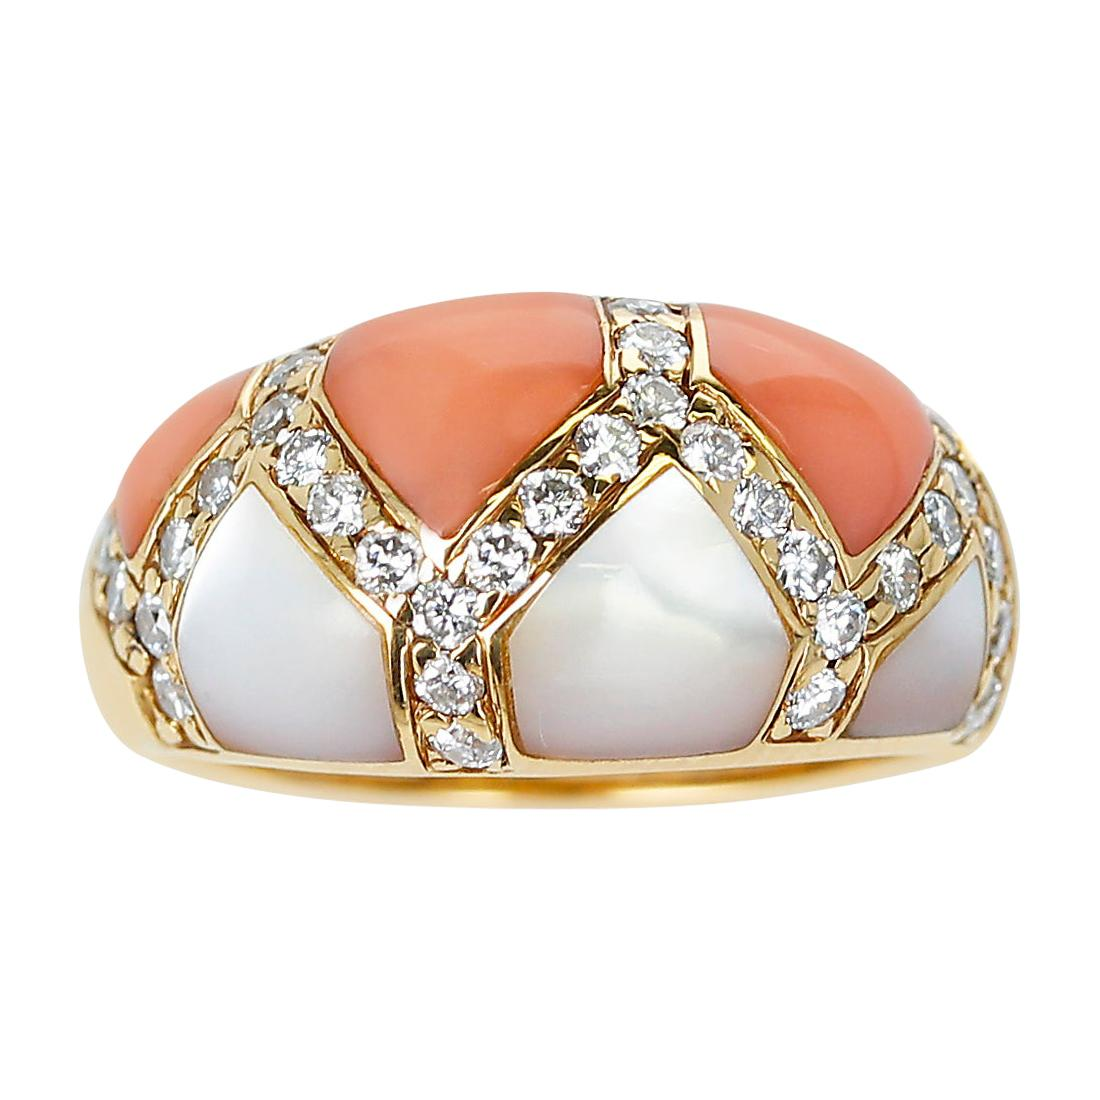 Coral and Mother of Pearl Ring with Diamonds, 18K Yellow Gold